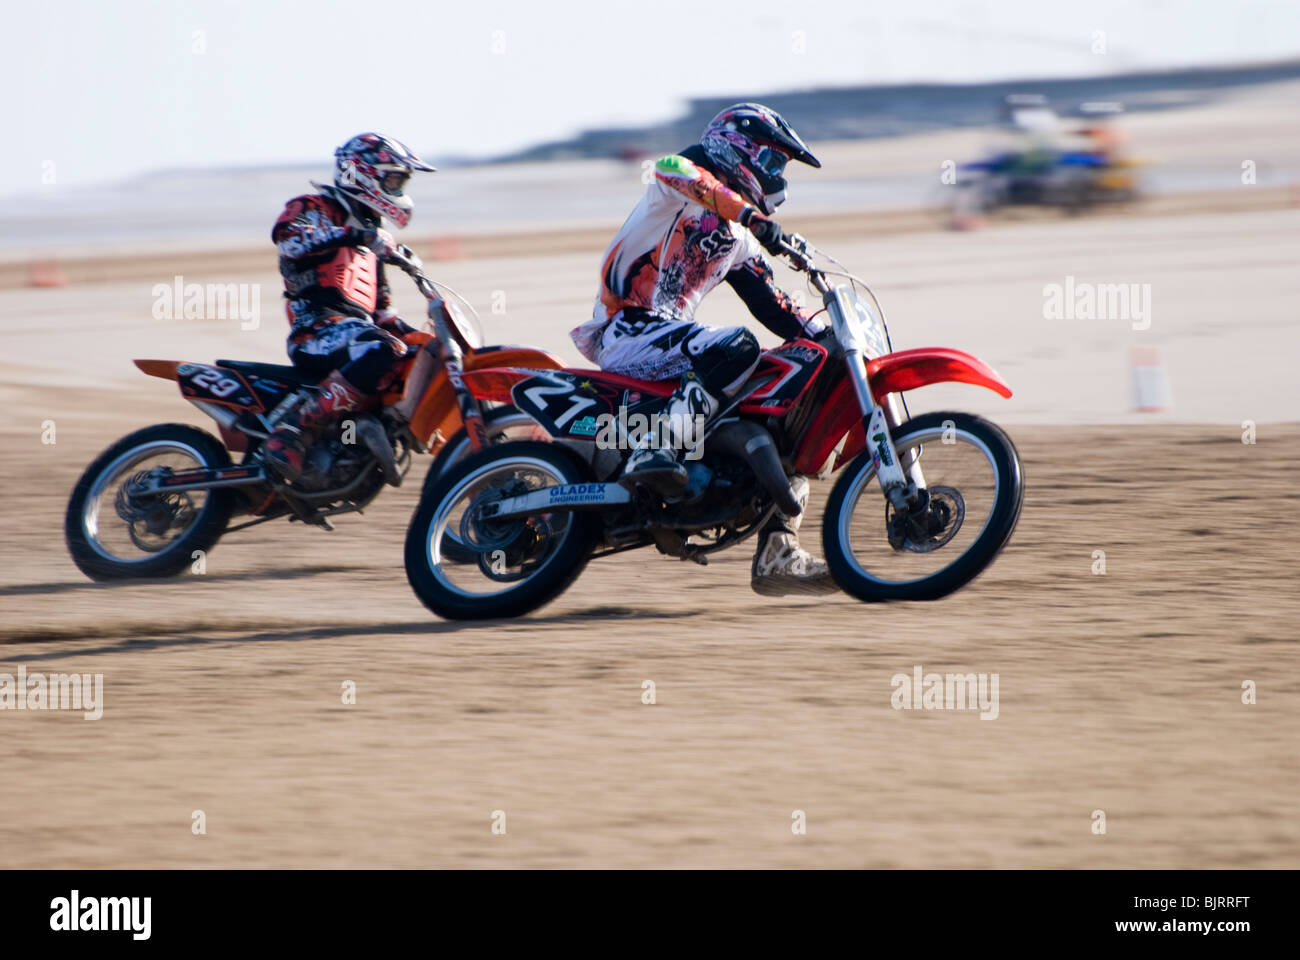 Motor Bike Sand Racing On Stock Photos Motor Bike Sand Racing On